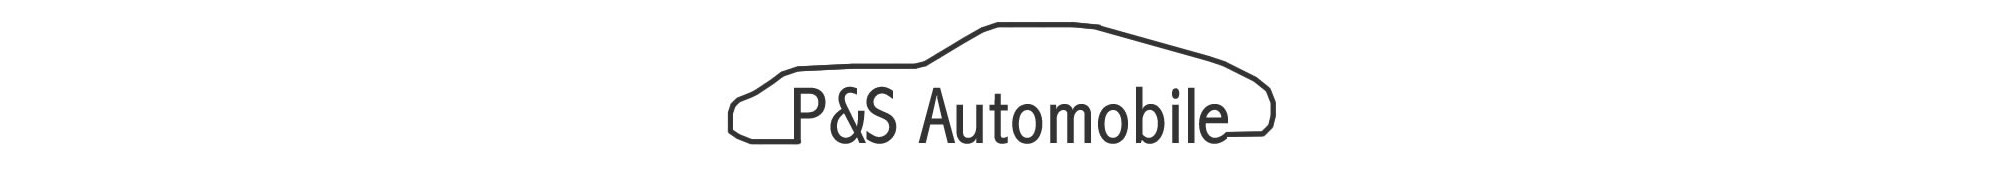 P&S Automobile